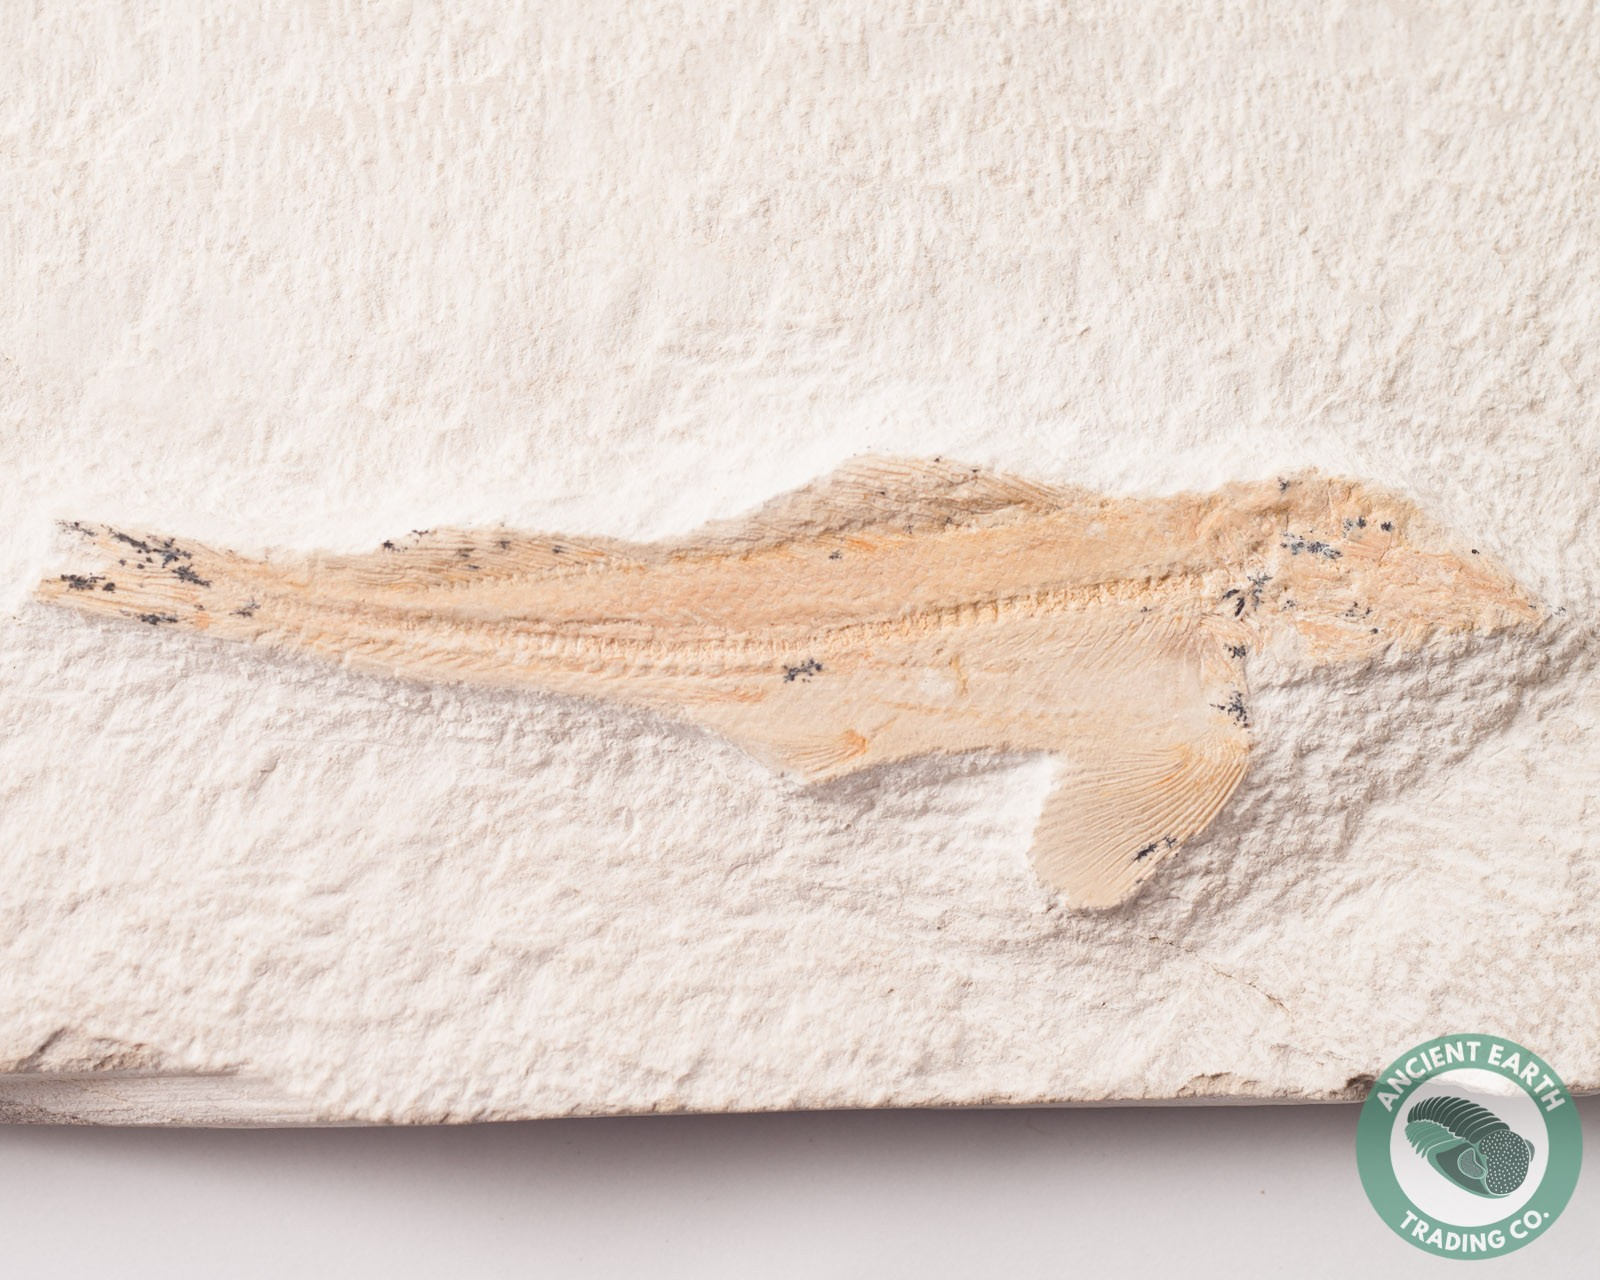 3.7 in. Bowfin Fossil Fish Agoultichthys - Morocco